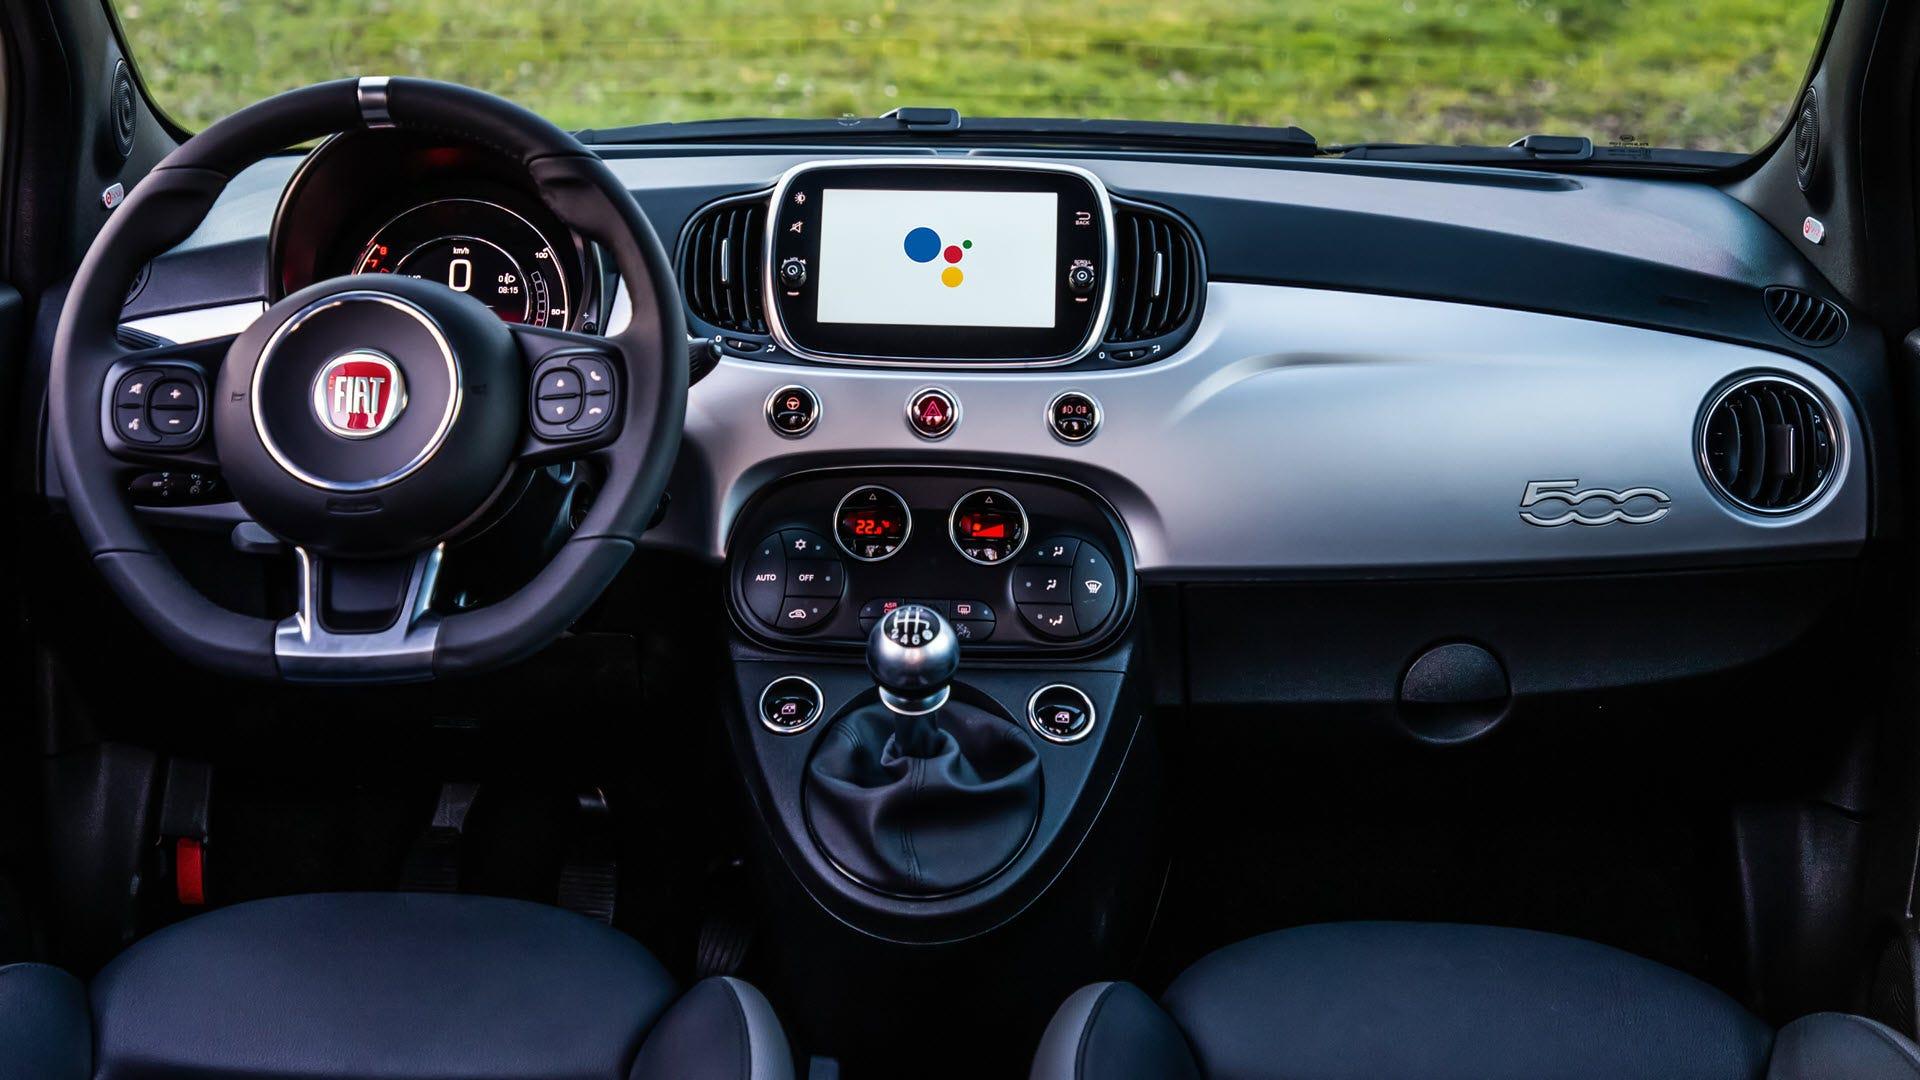 A Fiat center dash with a Google Assistant display